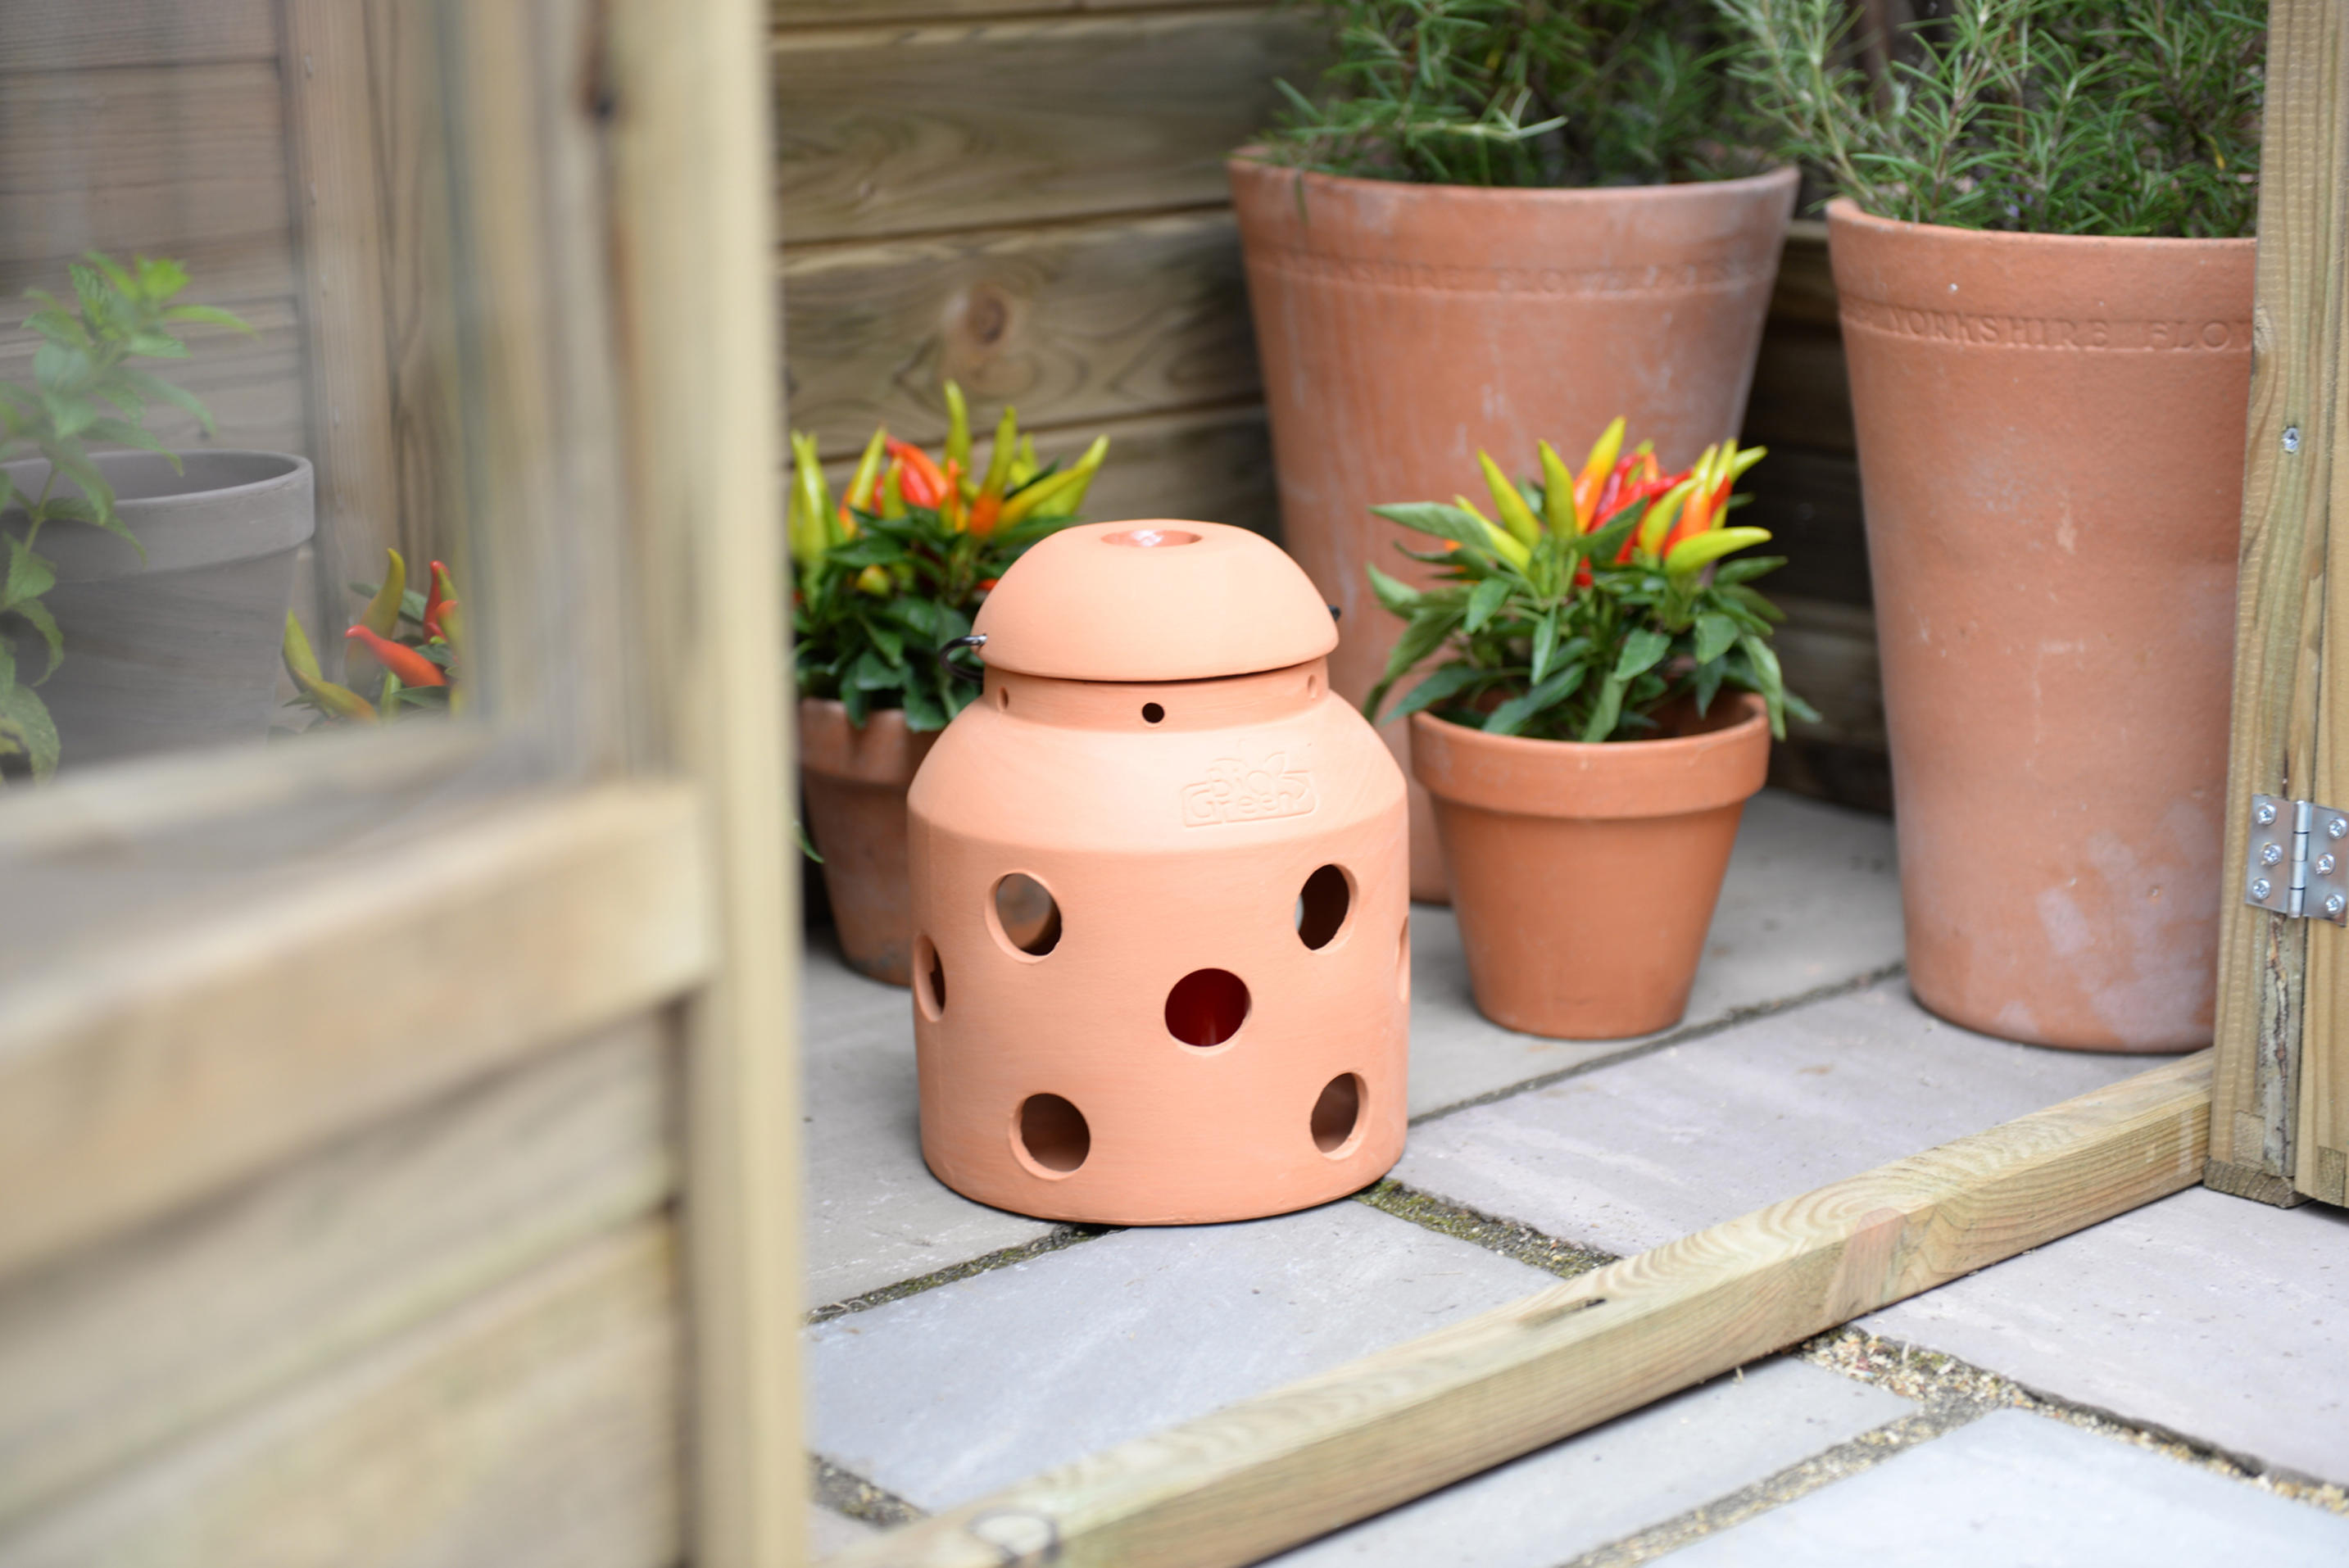 This terracotta FireFly can prevent frost in your greenhouse (Bio Green/PA)